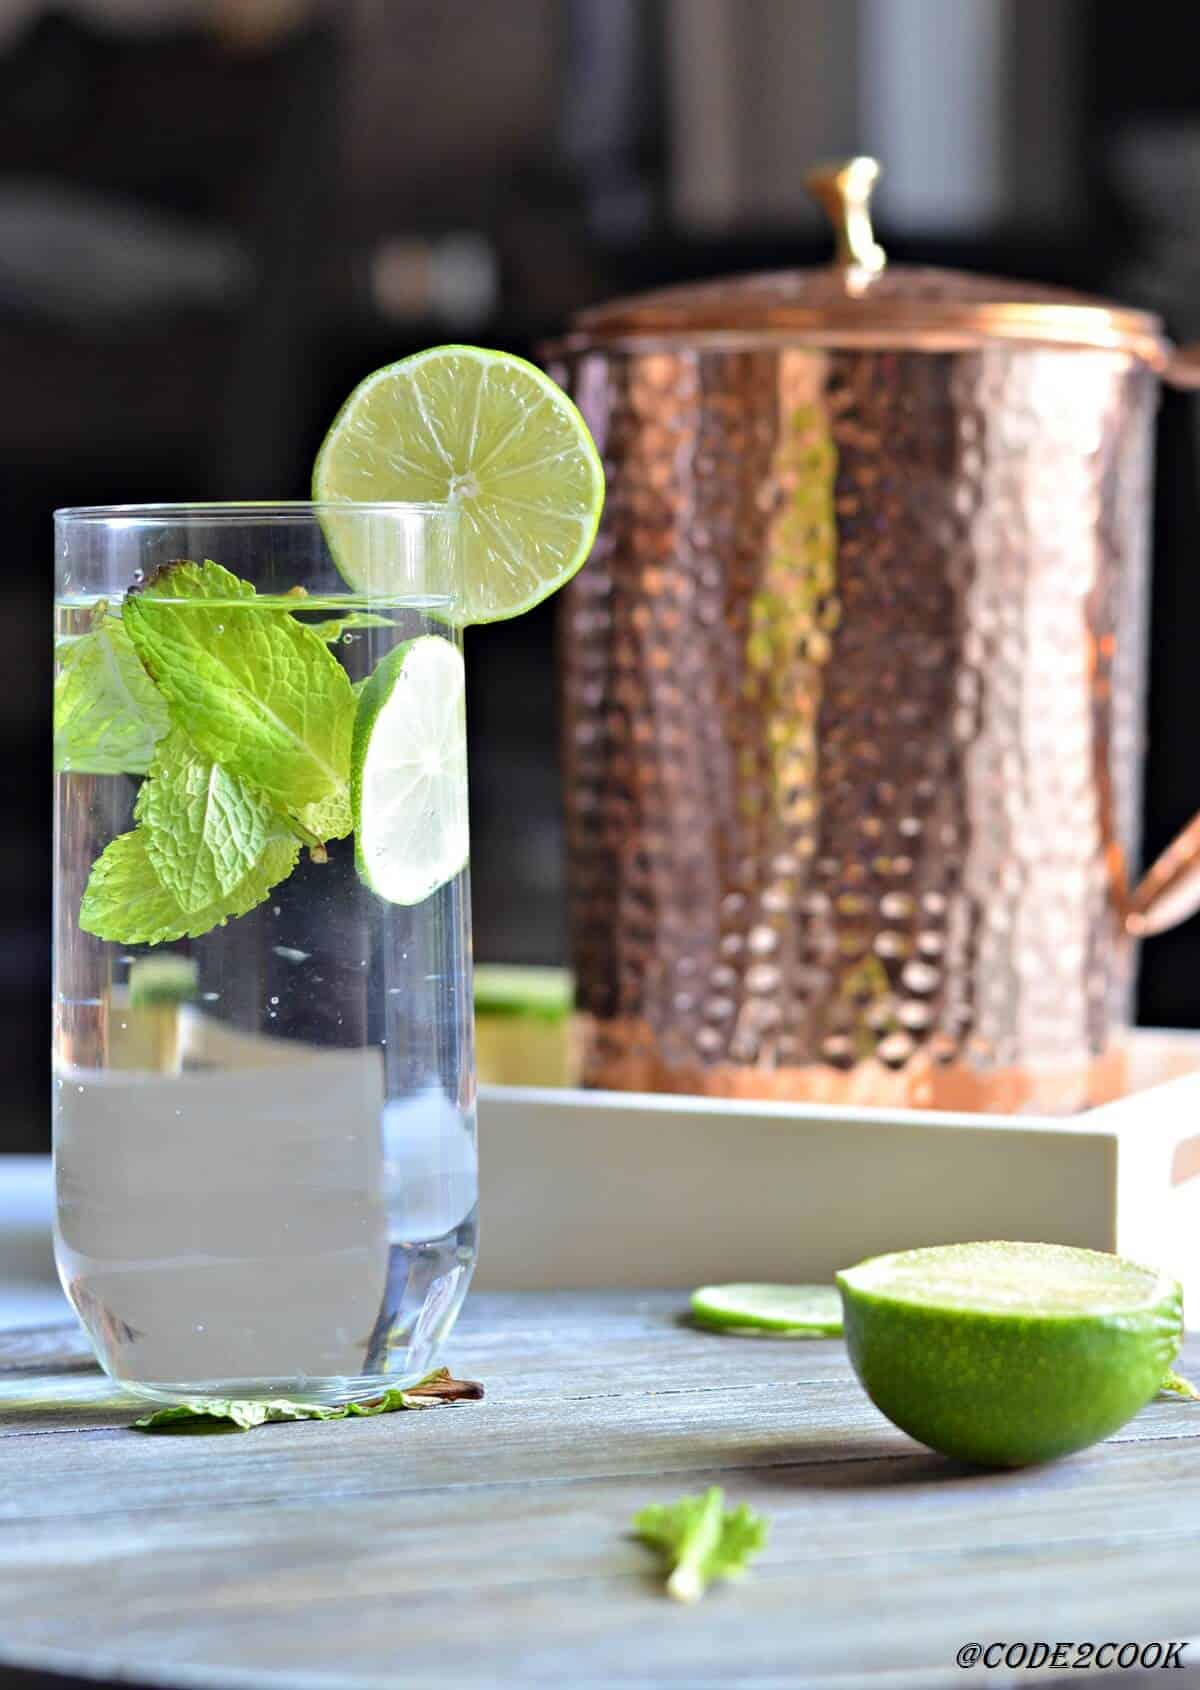 copper pitcher with a glass of drinking water served with lemon wedge & fresh mint leaves.